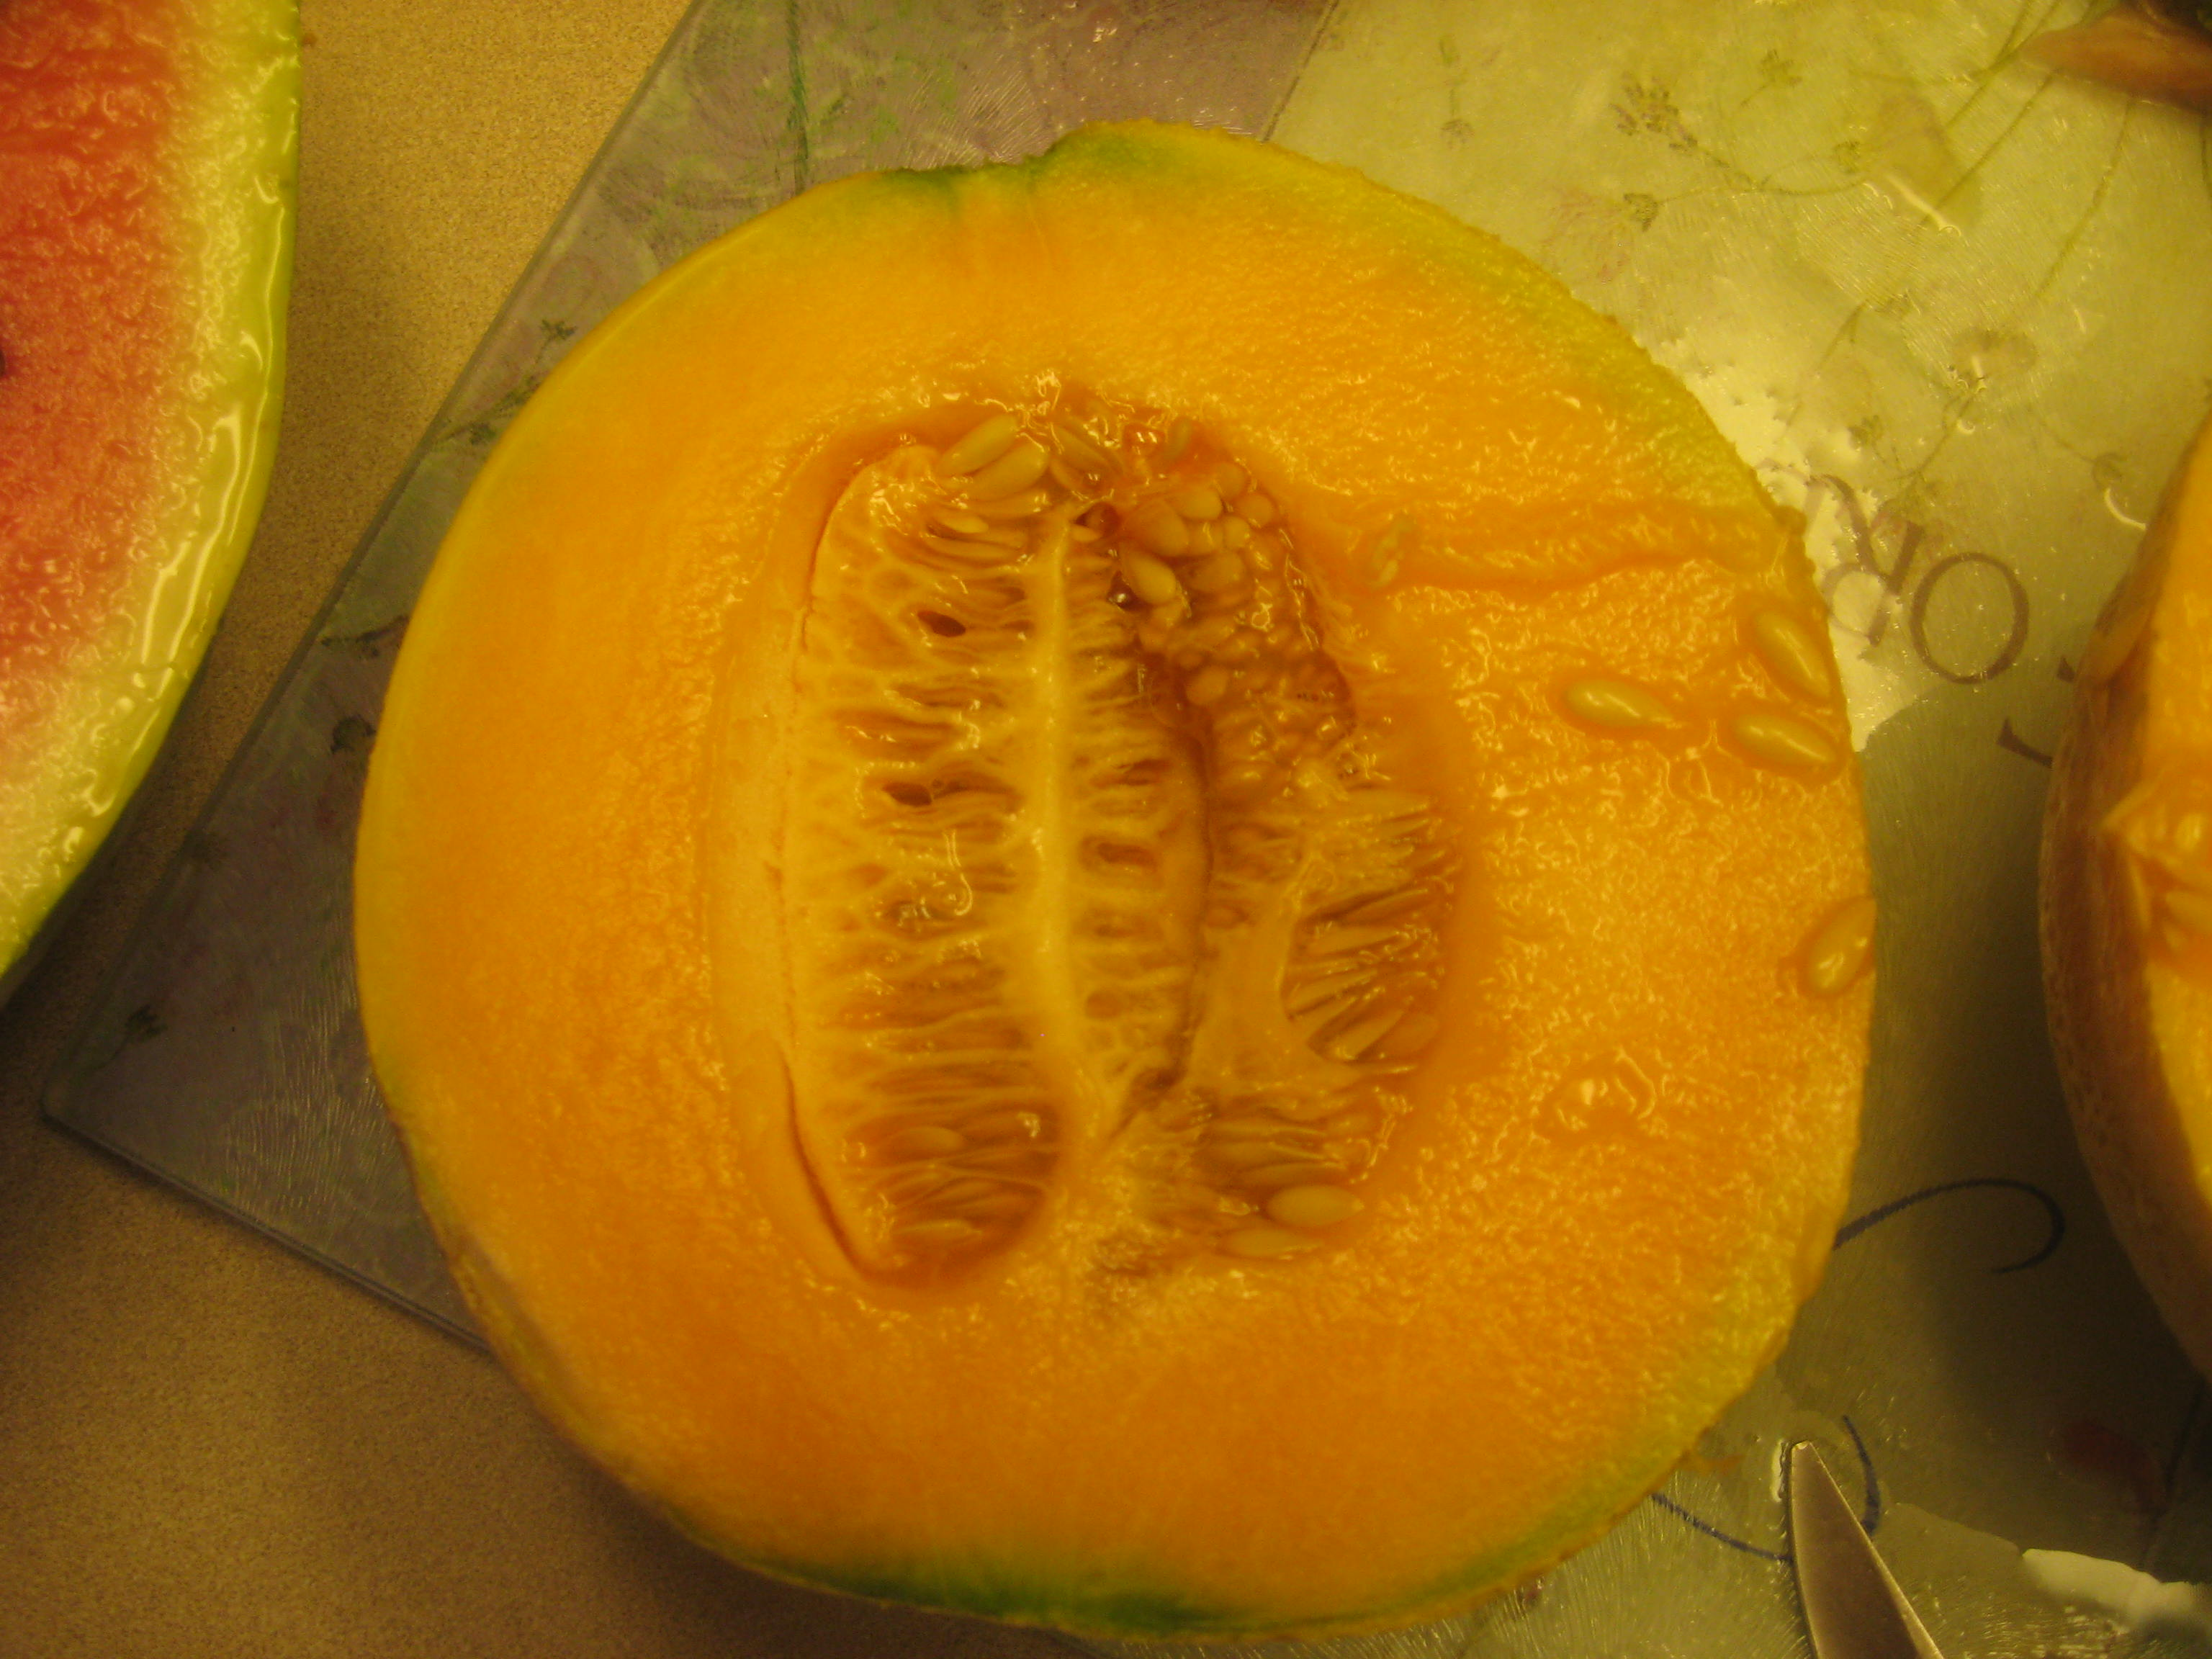 The perfect cantaloupe 1 day after it was picked